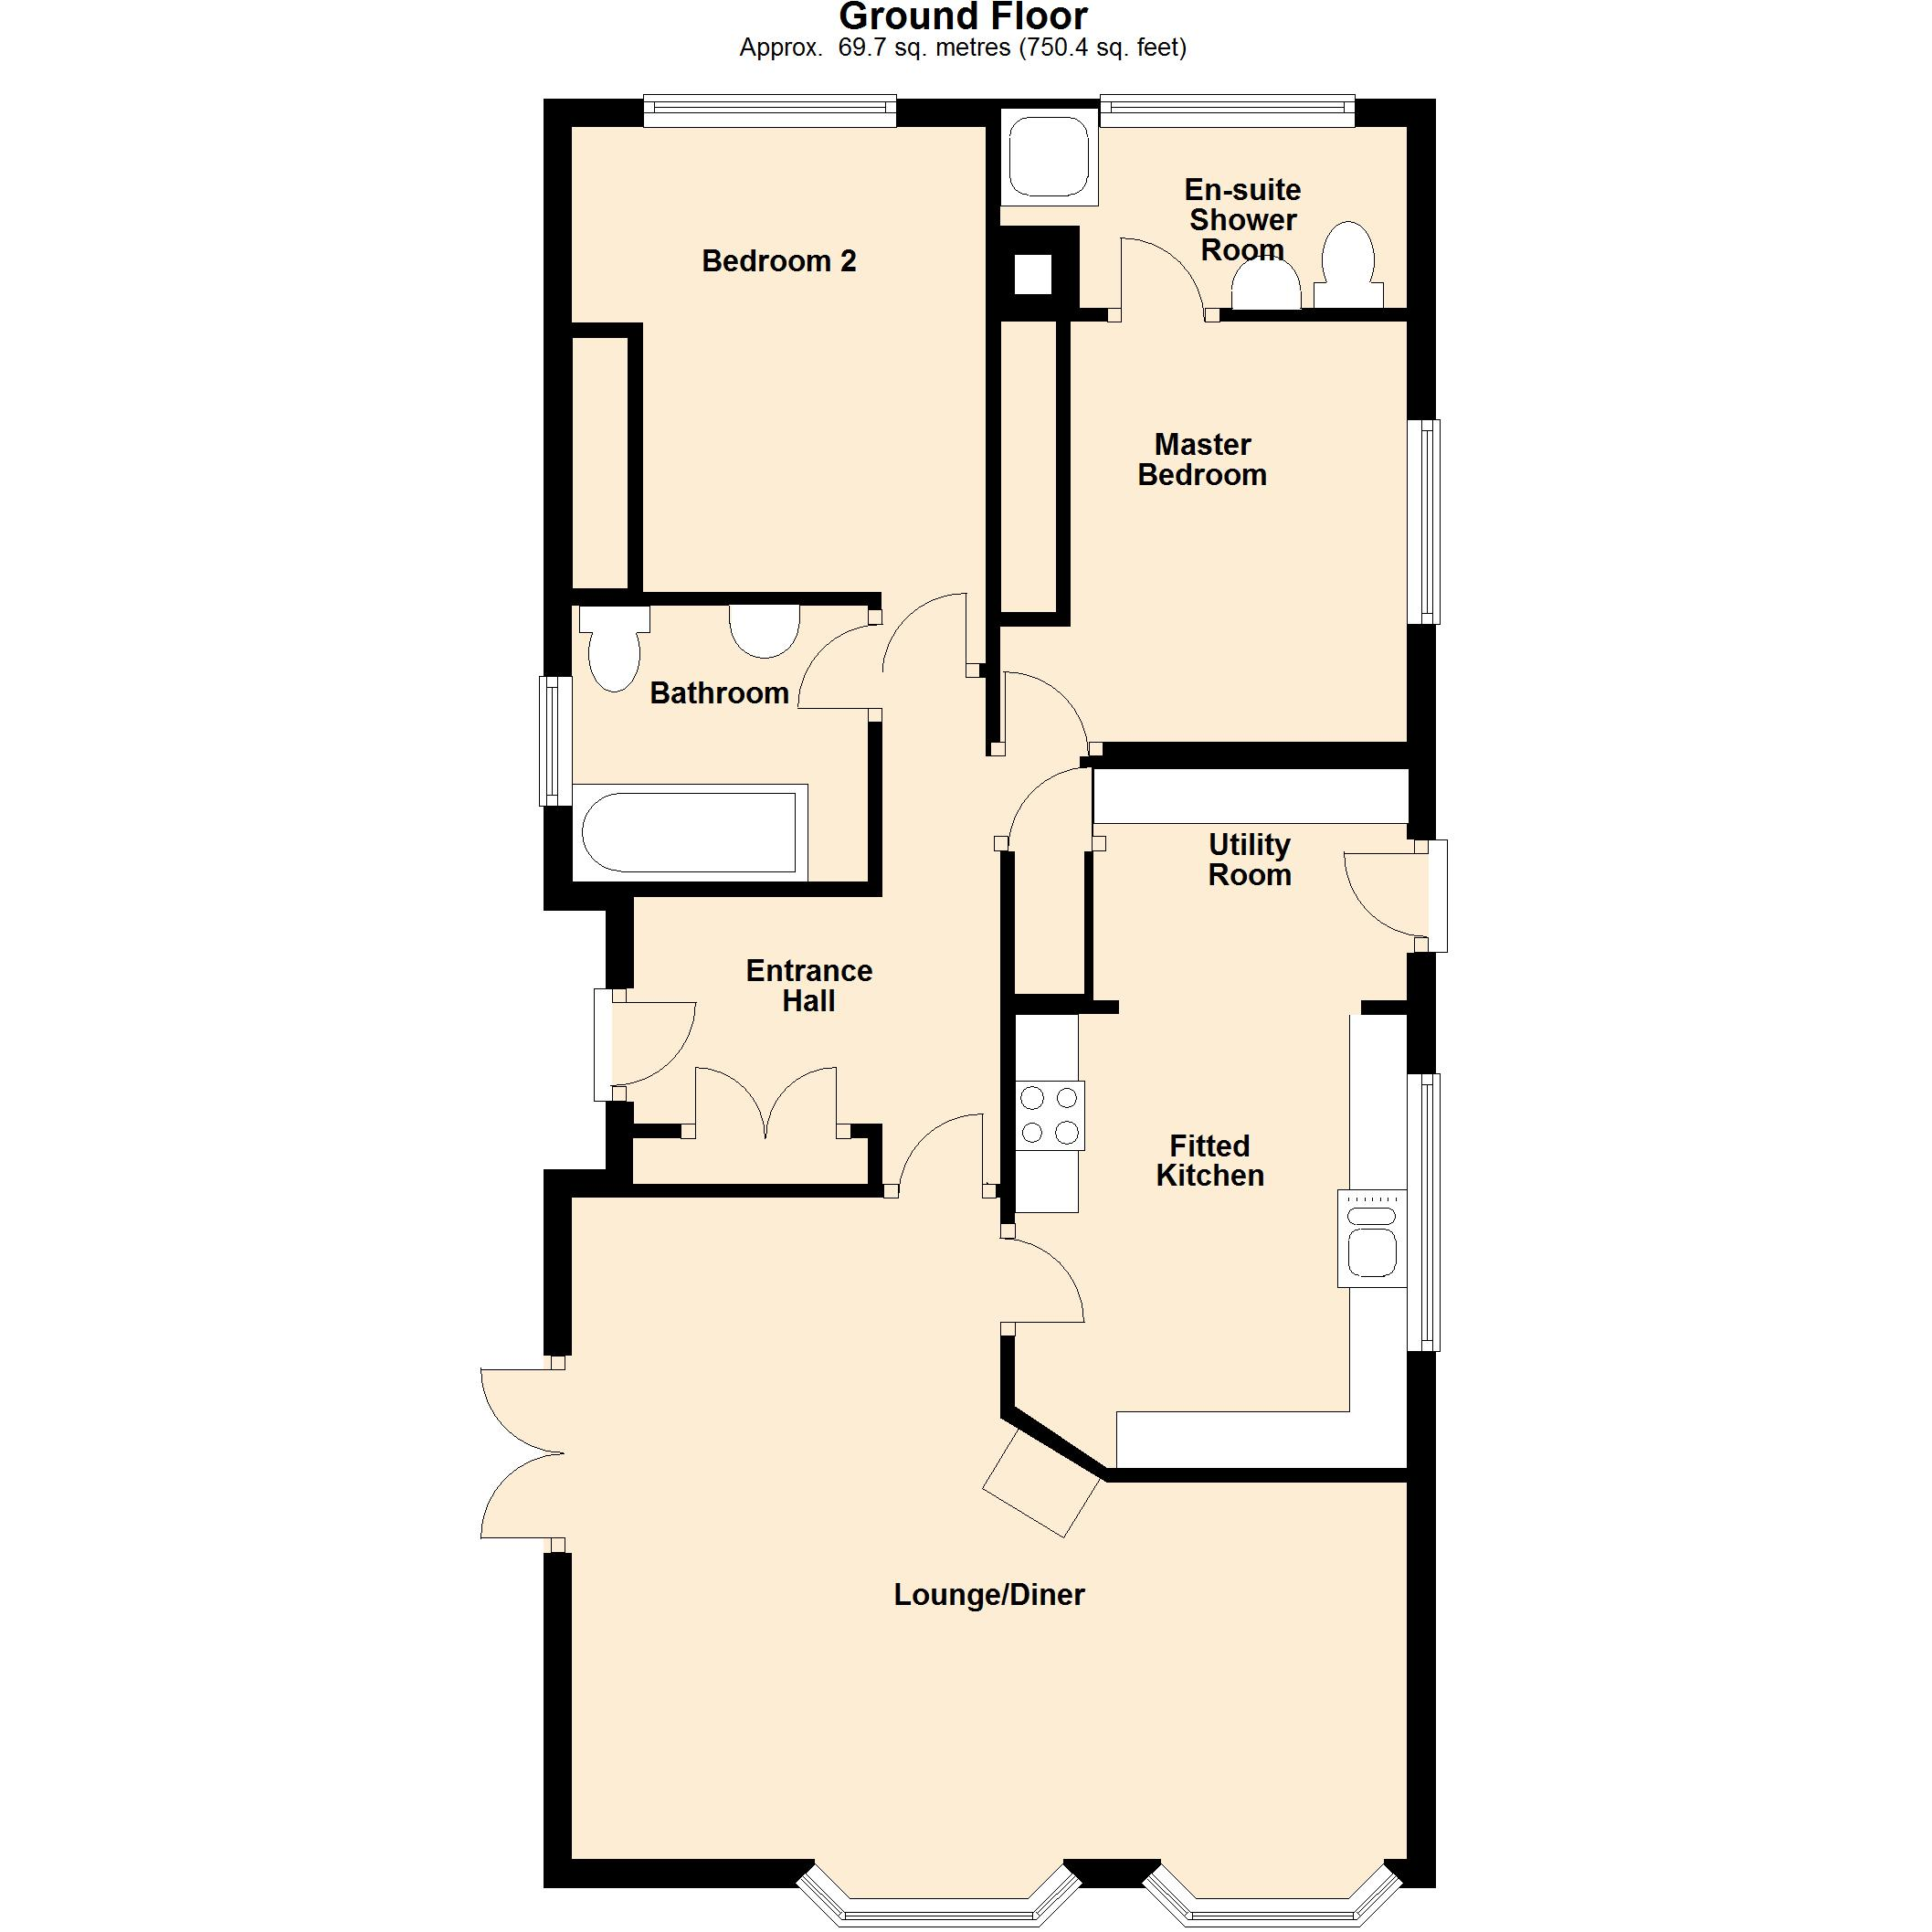 40x20 house plans house design plans Design your house plans